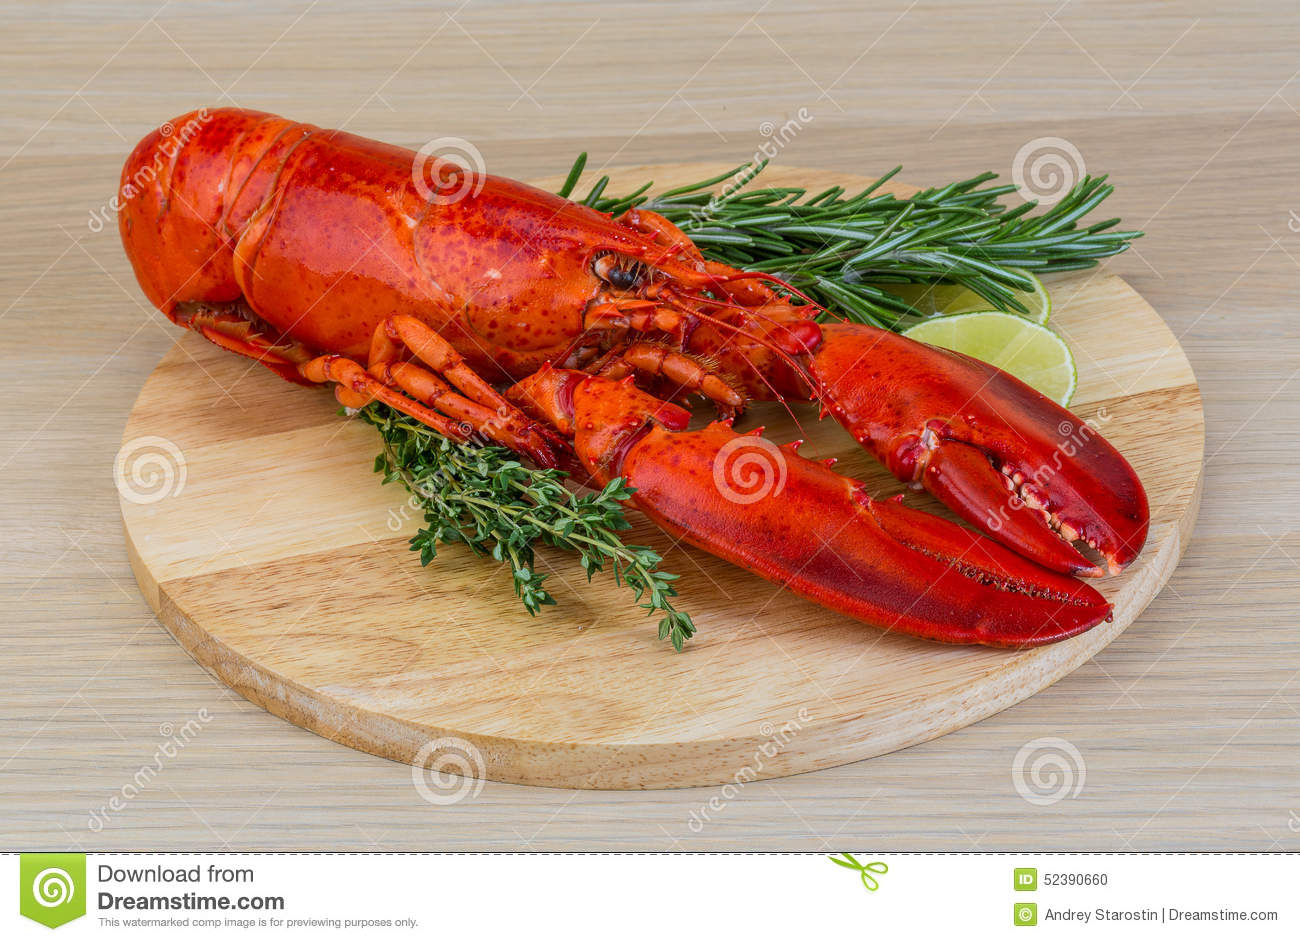 Boiled lobster served with thyme and rosemary.